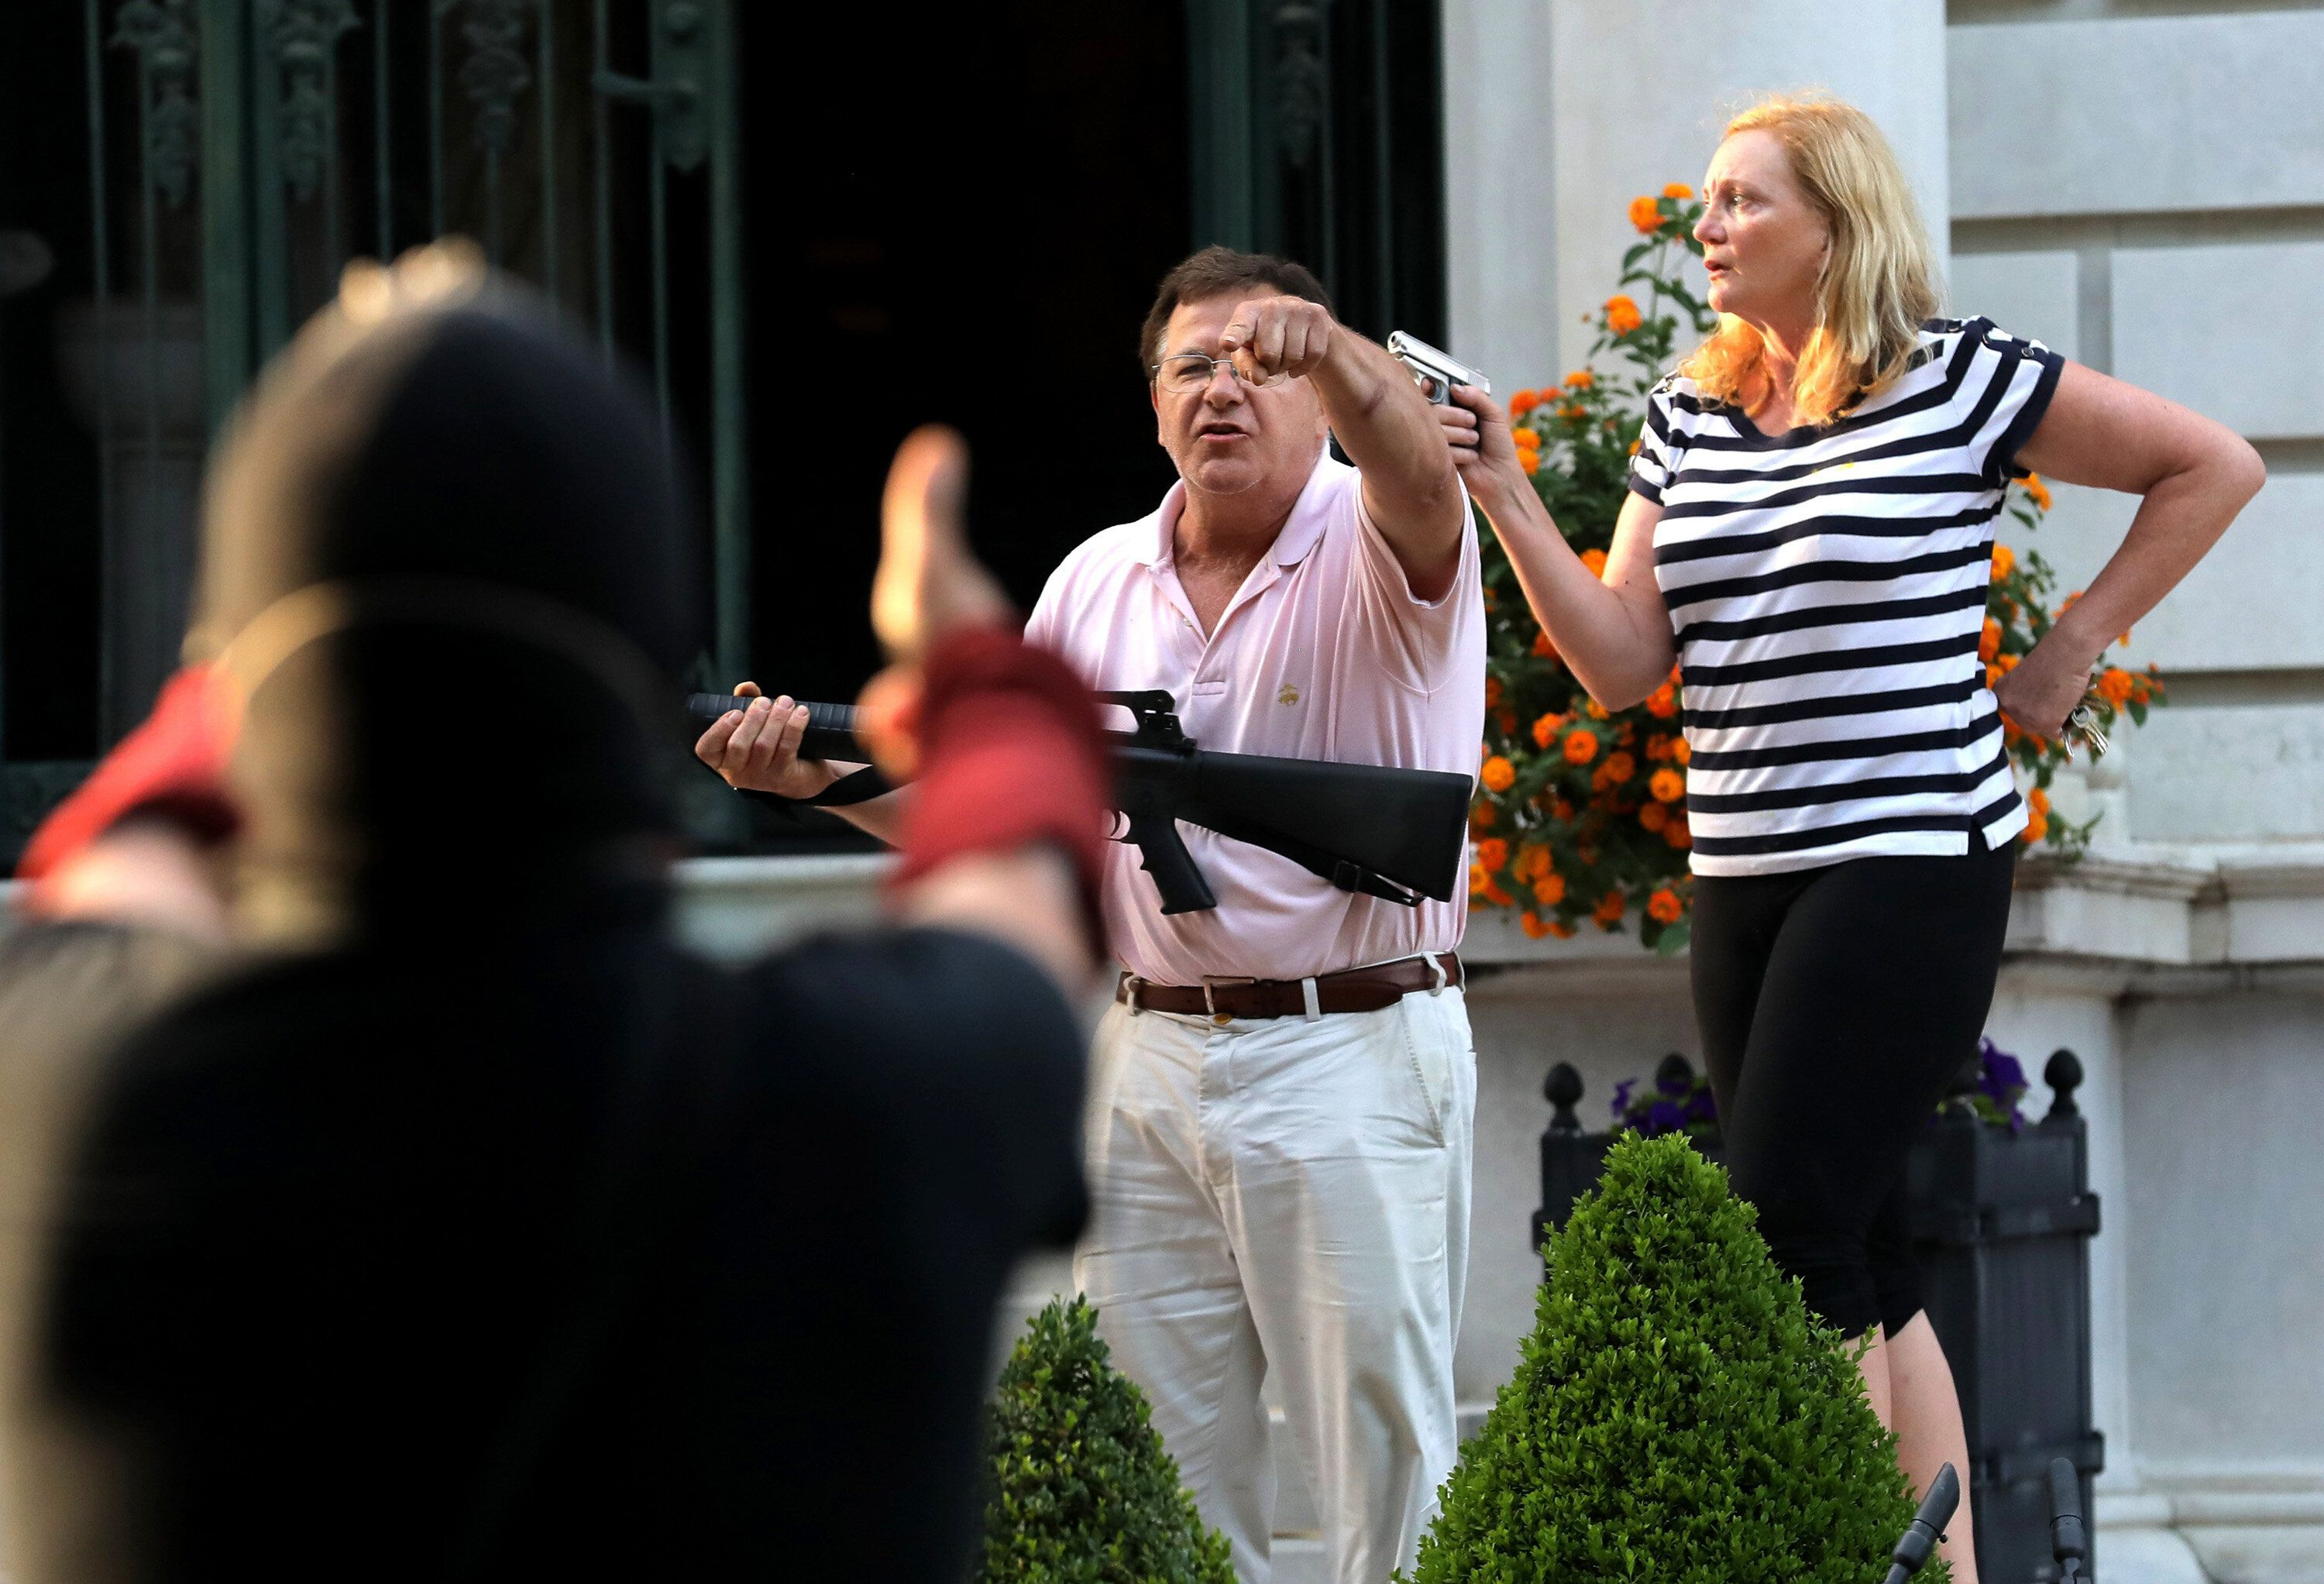 Mark and Patty McCloskey gained national attention for pointing guns at Black Lives Matter protesters who were walking by the